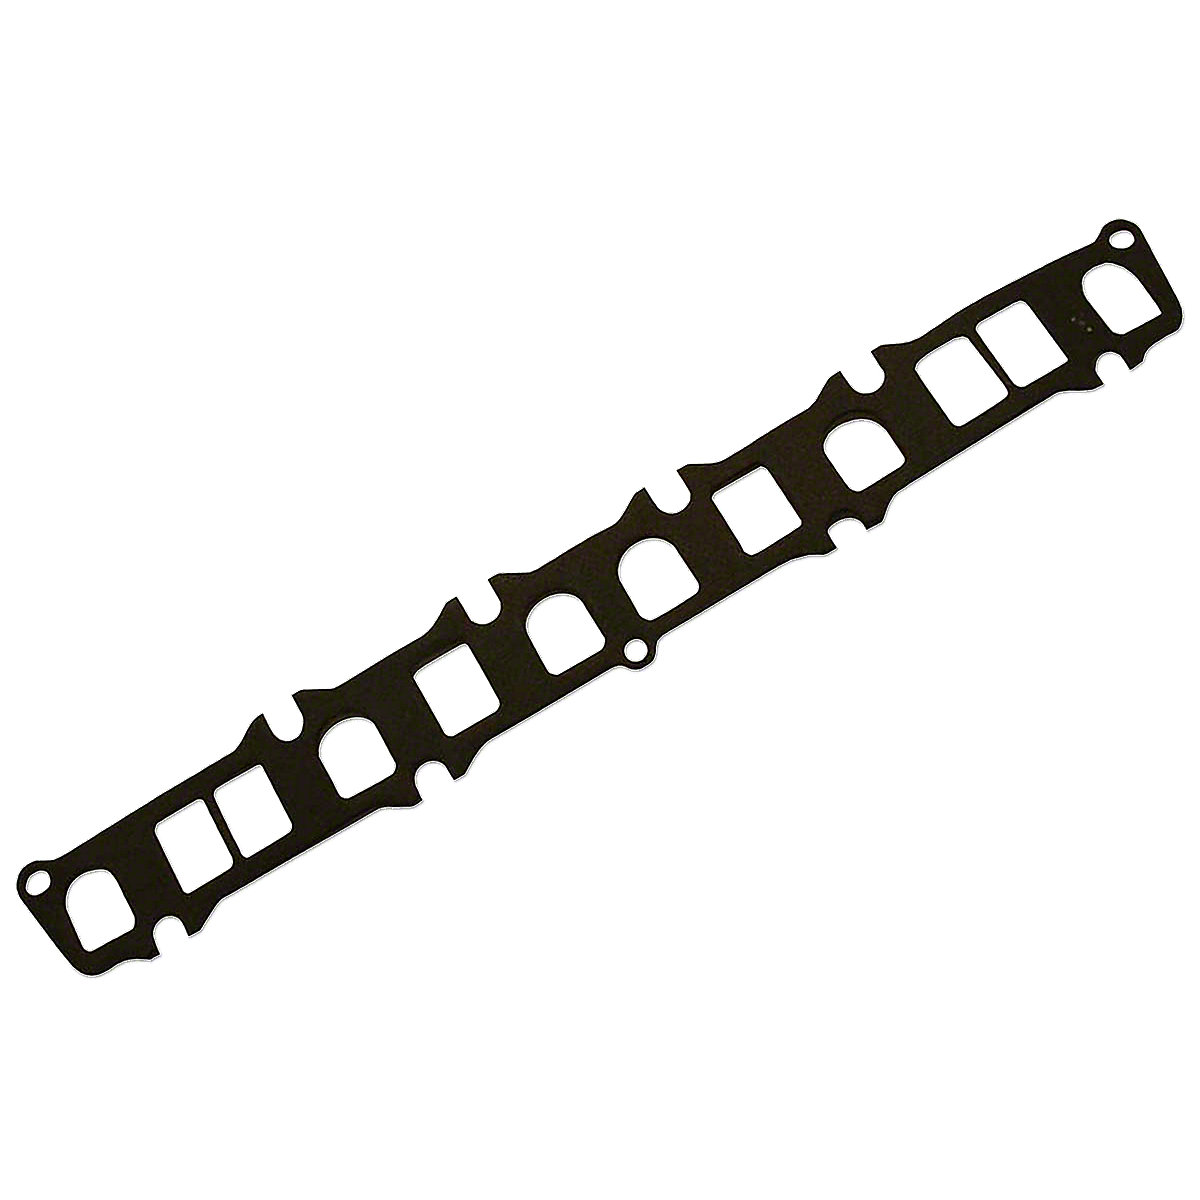 Manifold Gasket For Massey Harris: F226, F245, 101Sr, 44.